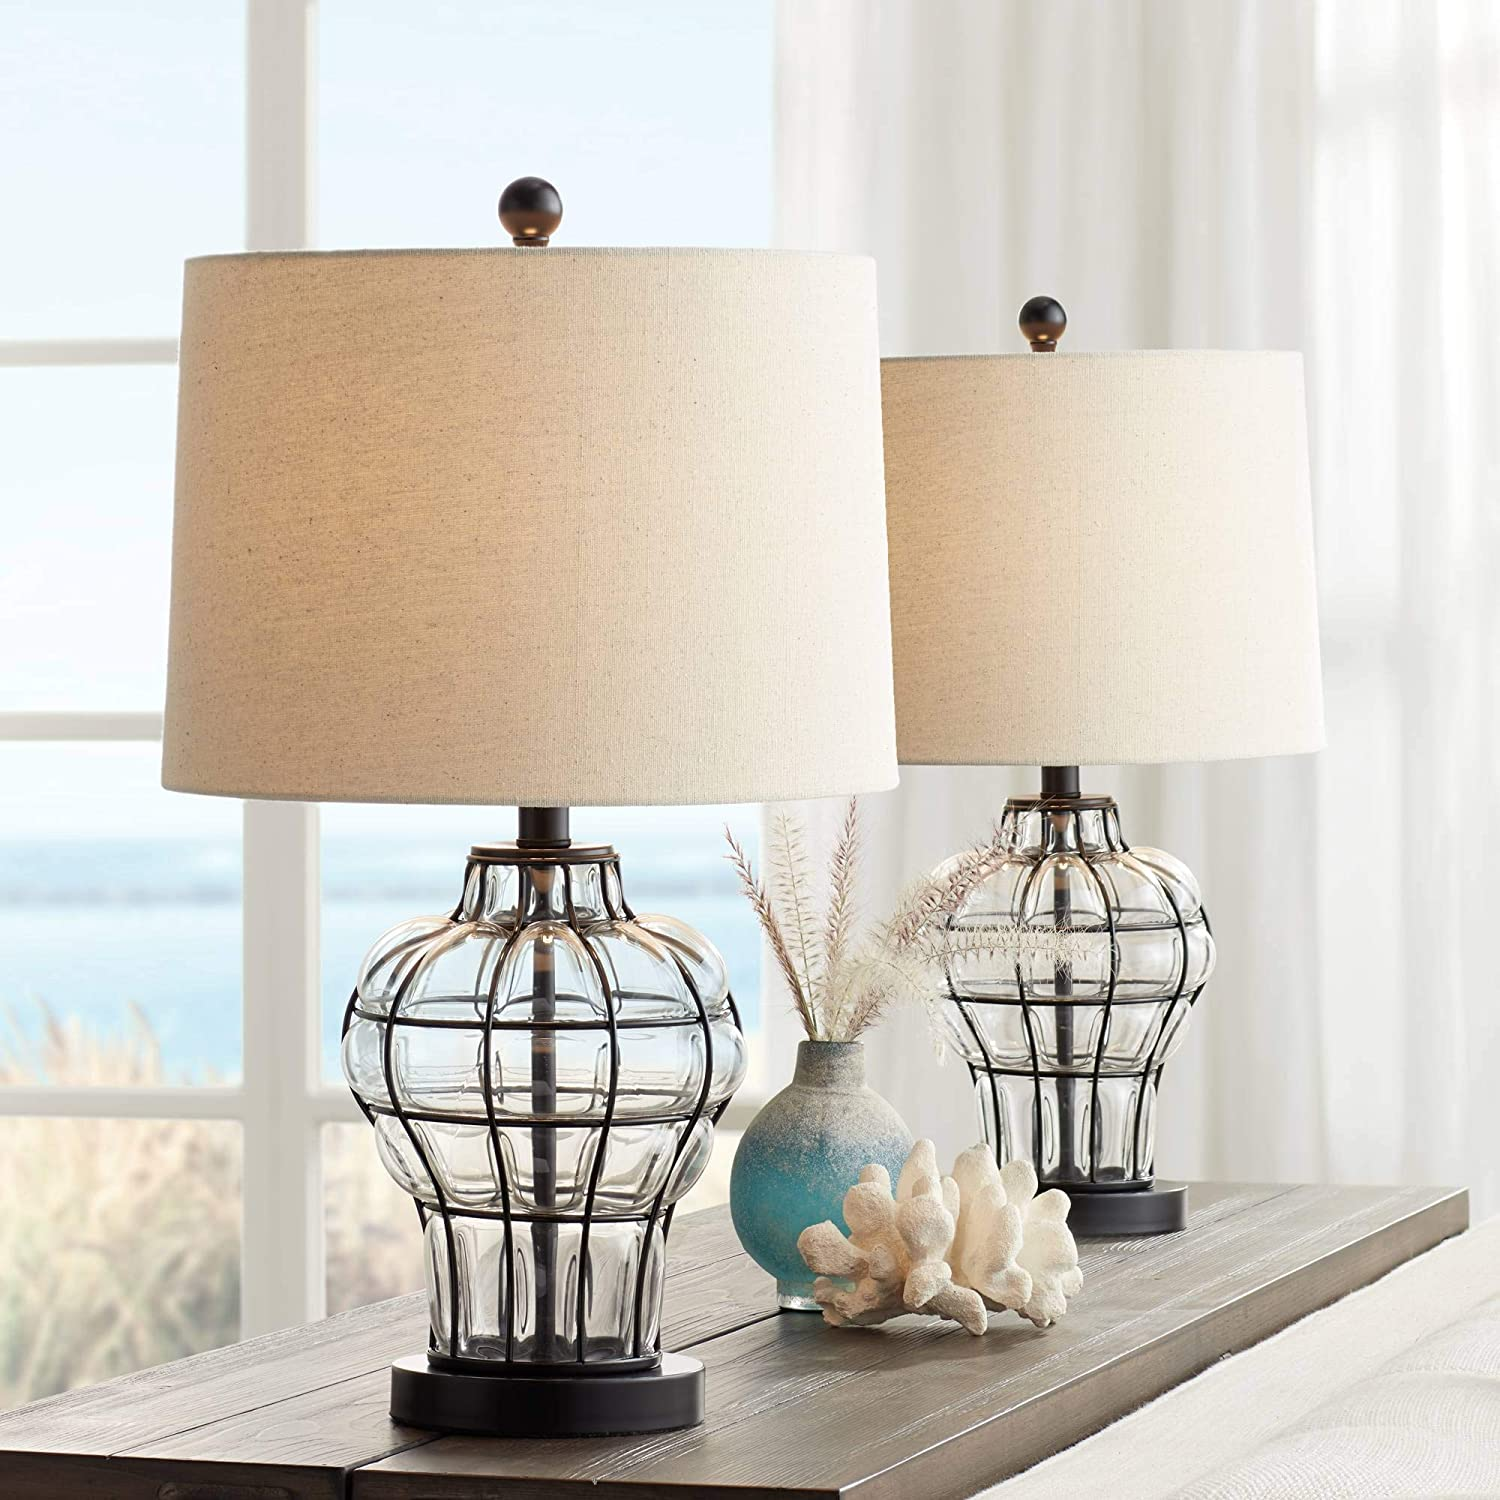 Hudson Modern Table Lamps Set of 2